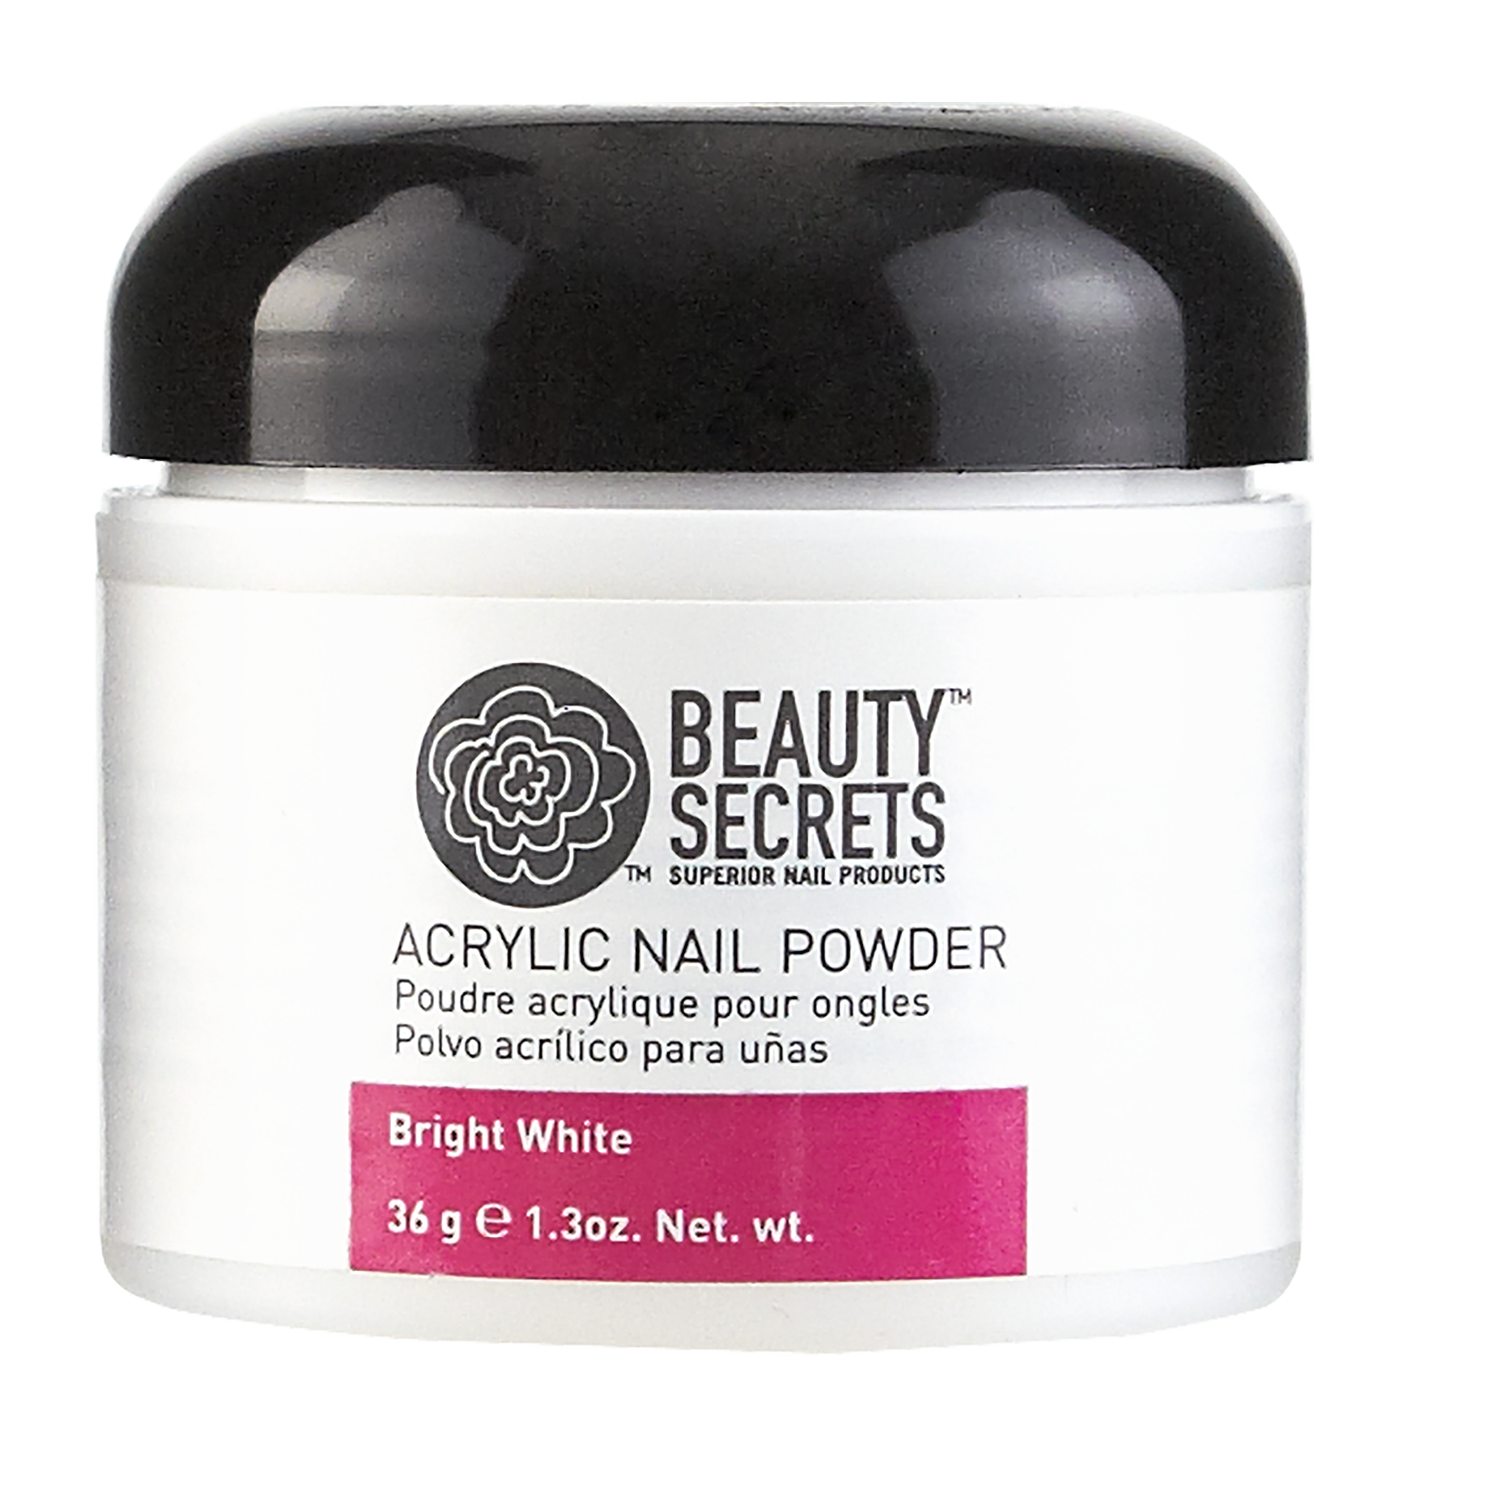 Beauty Secrets Acrylic Powder Bright White Cali Compliant